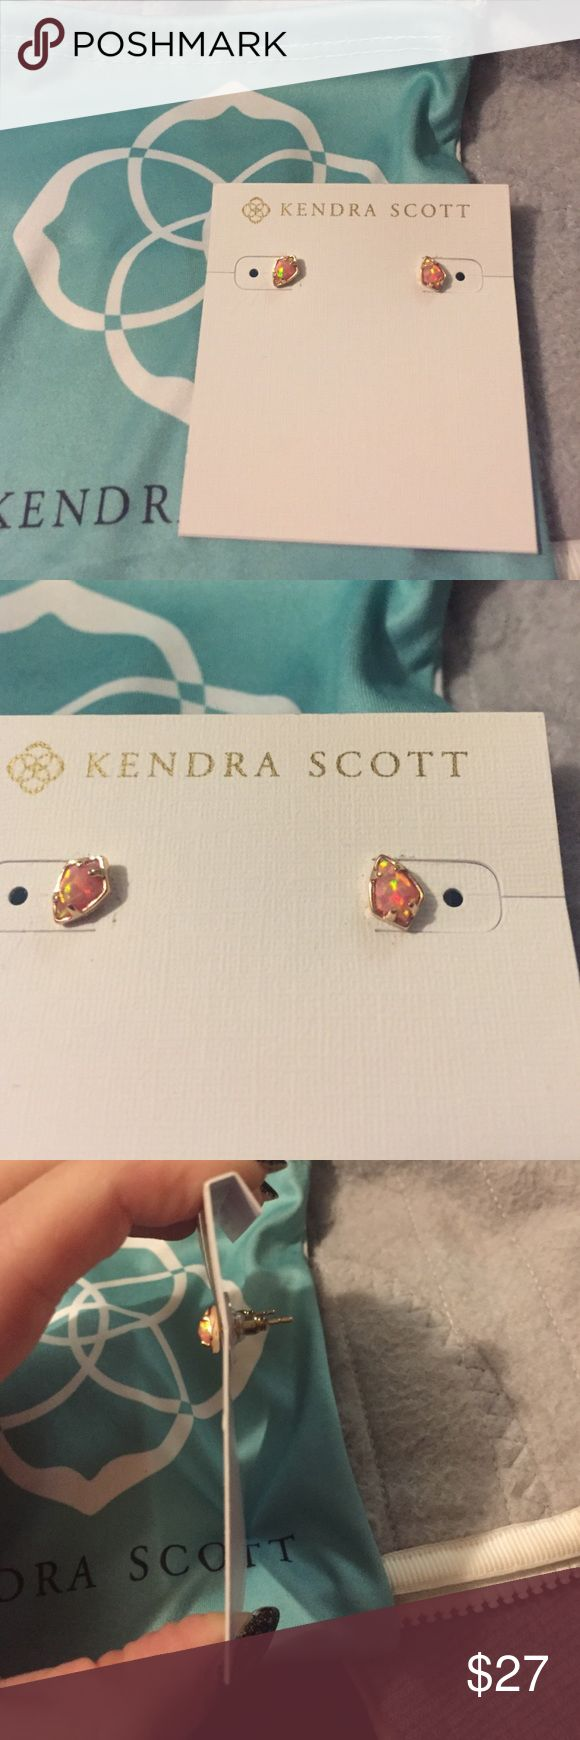 Kendra Scott Gina Mini Opal Studs These have been worn two or three times and are in excellent condition. They are a coral/pinkish opal set in 14k plated ROSEgold but look close to regular gold since they're so tiny! ADORABLE earrings and perfect for your second hole! Kendra Scott Jewelry Earrings